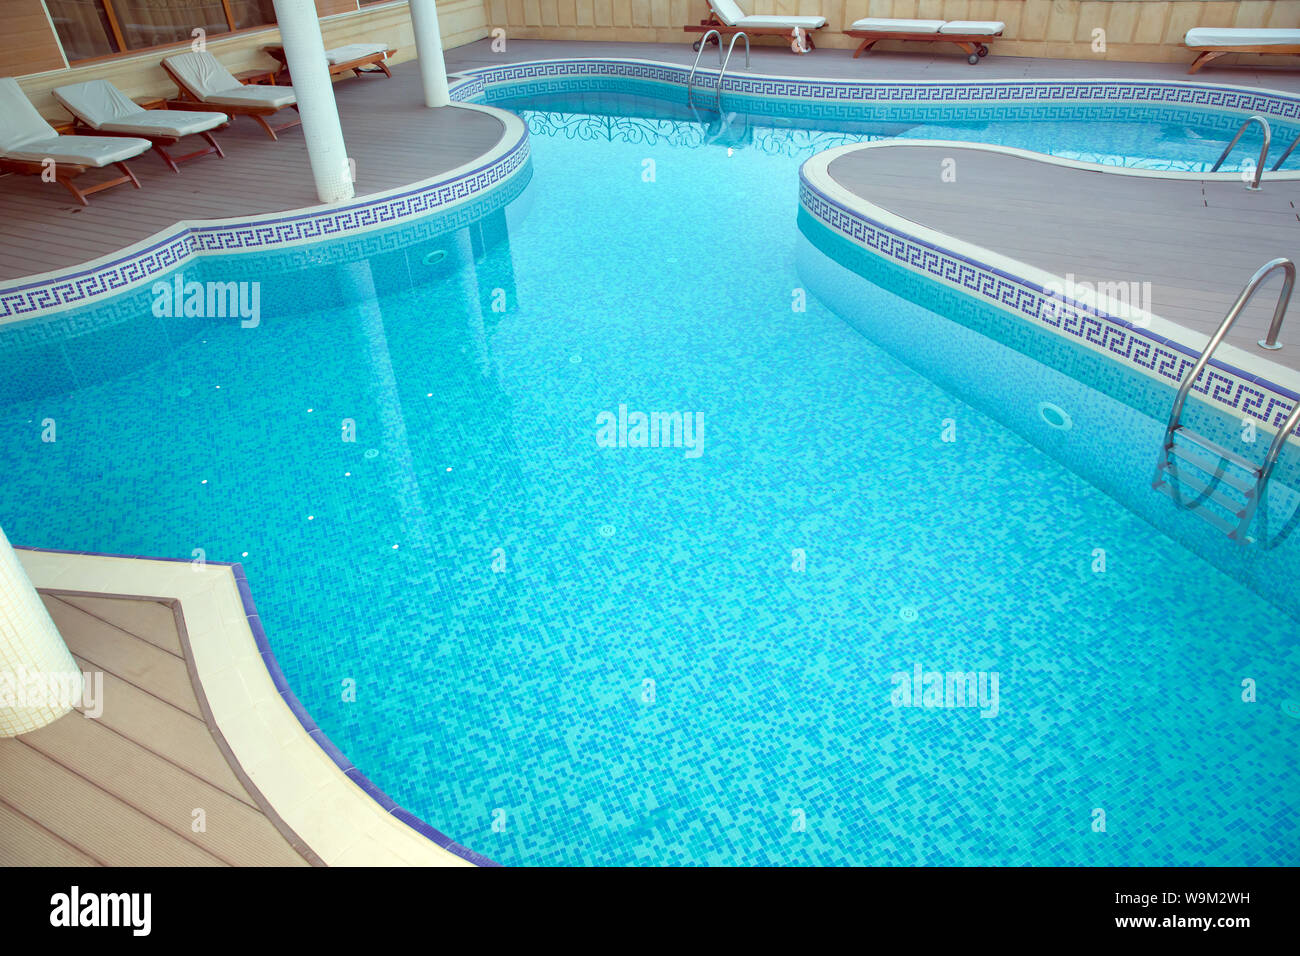 Swimming Pool . Bubble pool 3 . View on swimming pool with turquoise ...